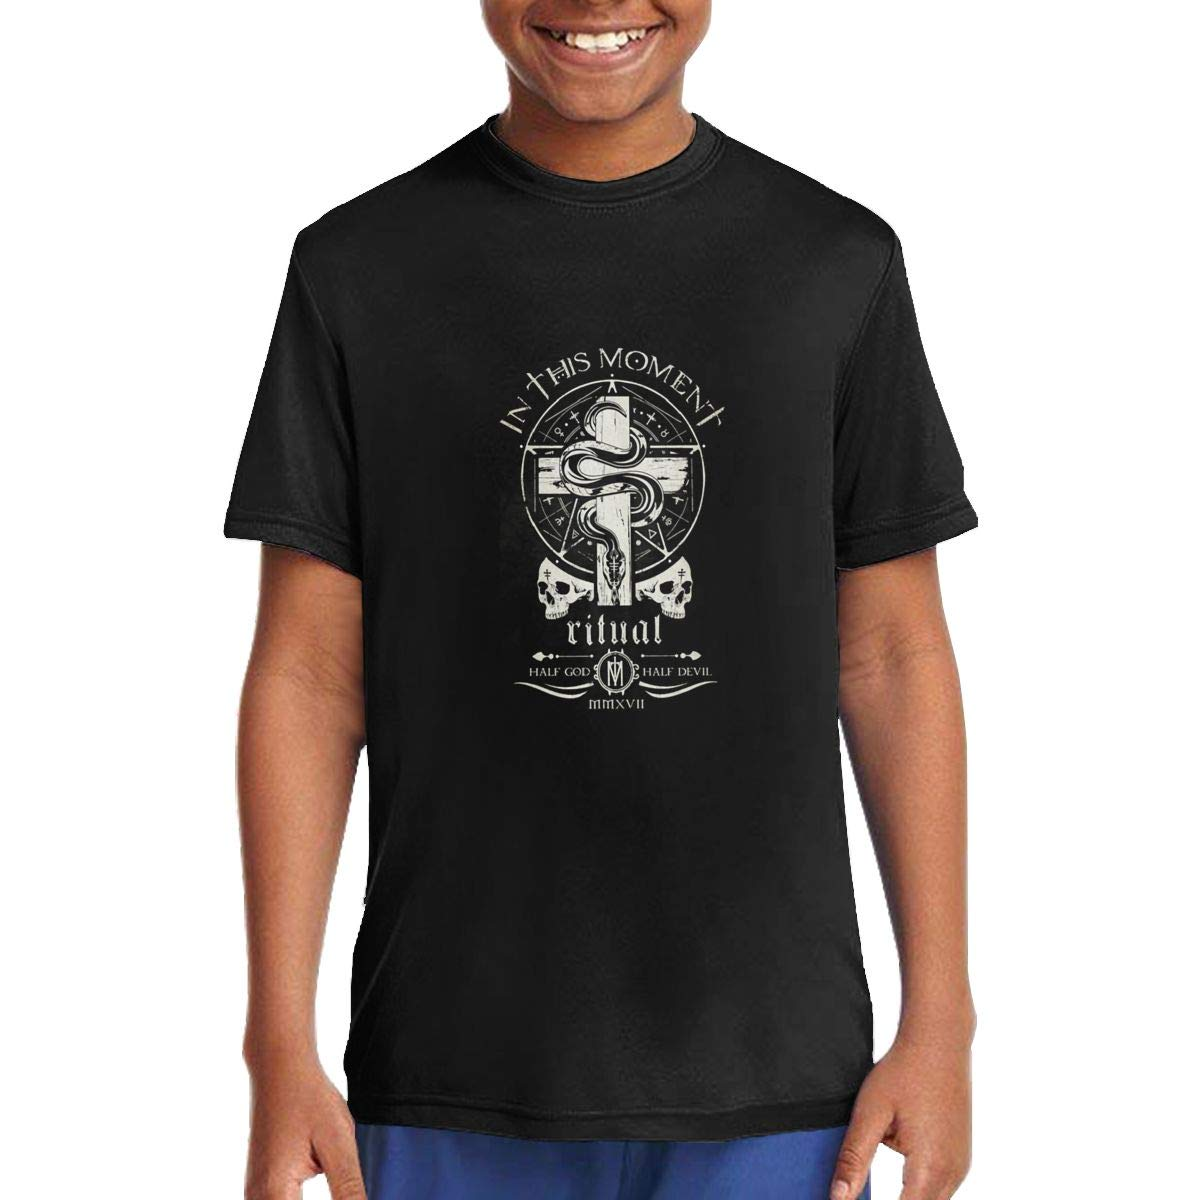 in This Moment Ritual Children T Shirts Short Sleeve Tees Boys Girls